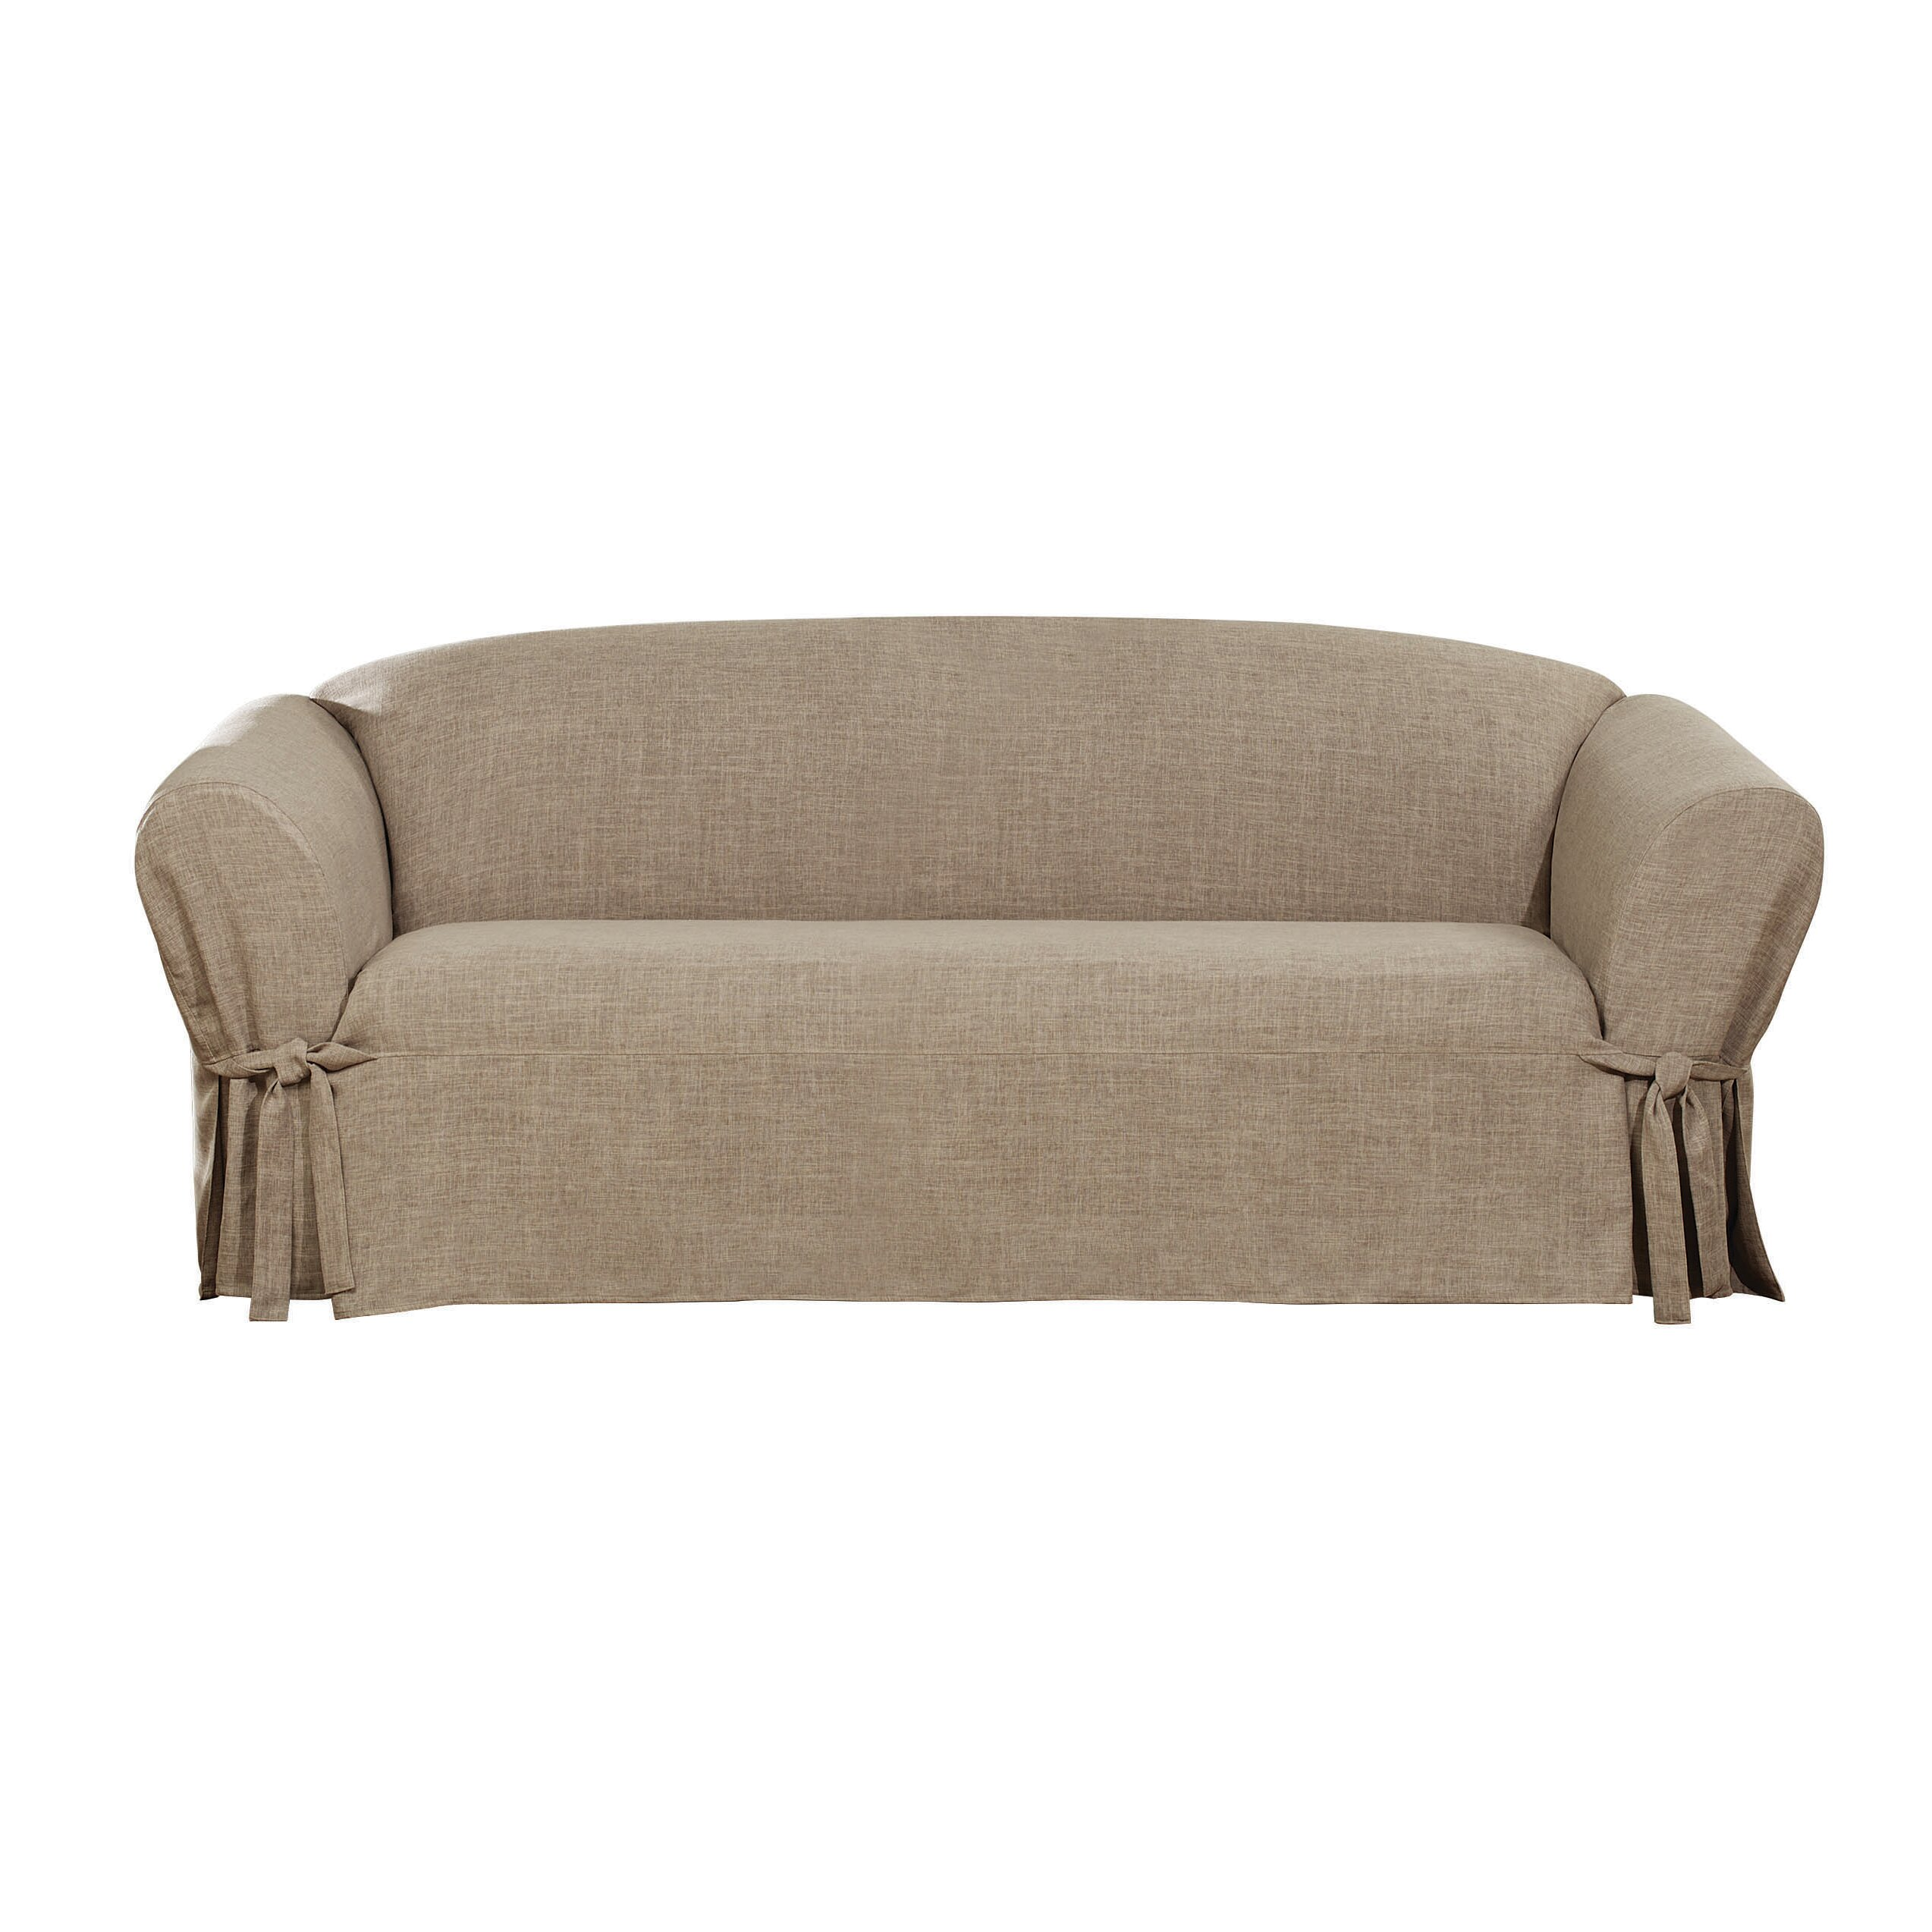 Fitted Sofa Slipcovers Fitted Slipcovers For Sofas And Loveseats Home Design Ideas